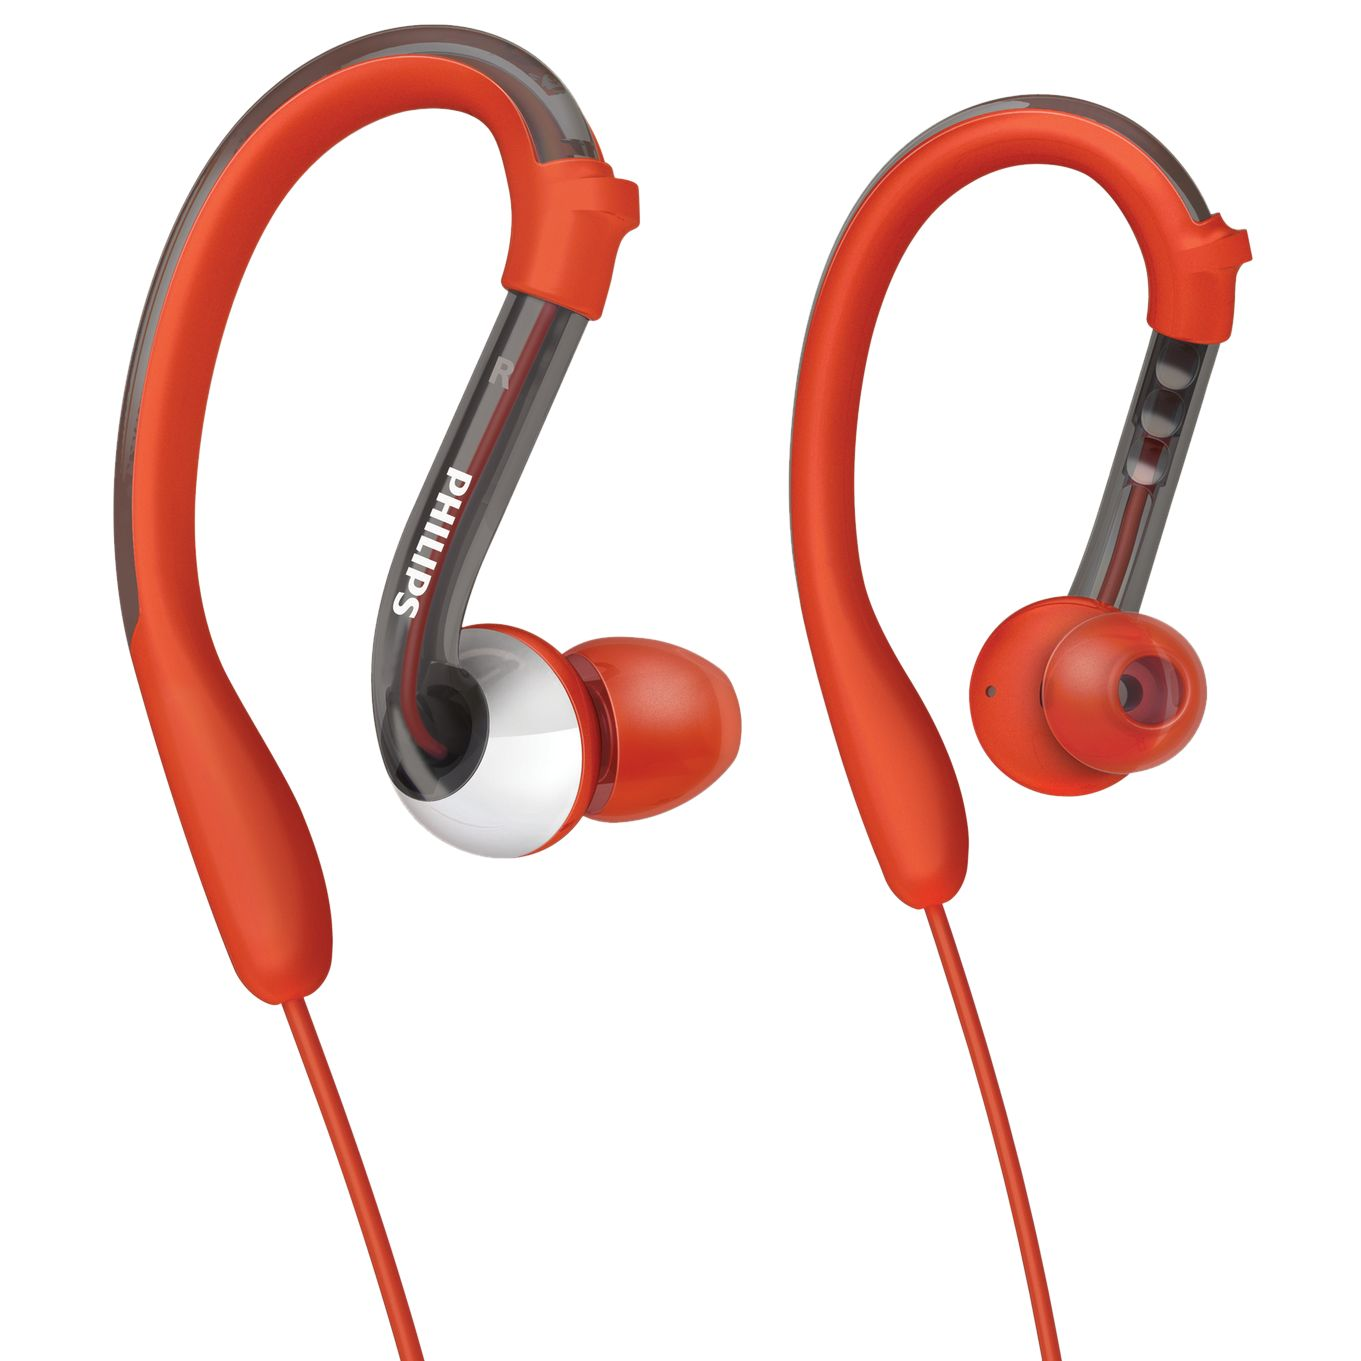 Around-ear clip headphones